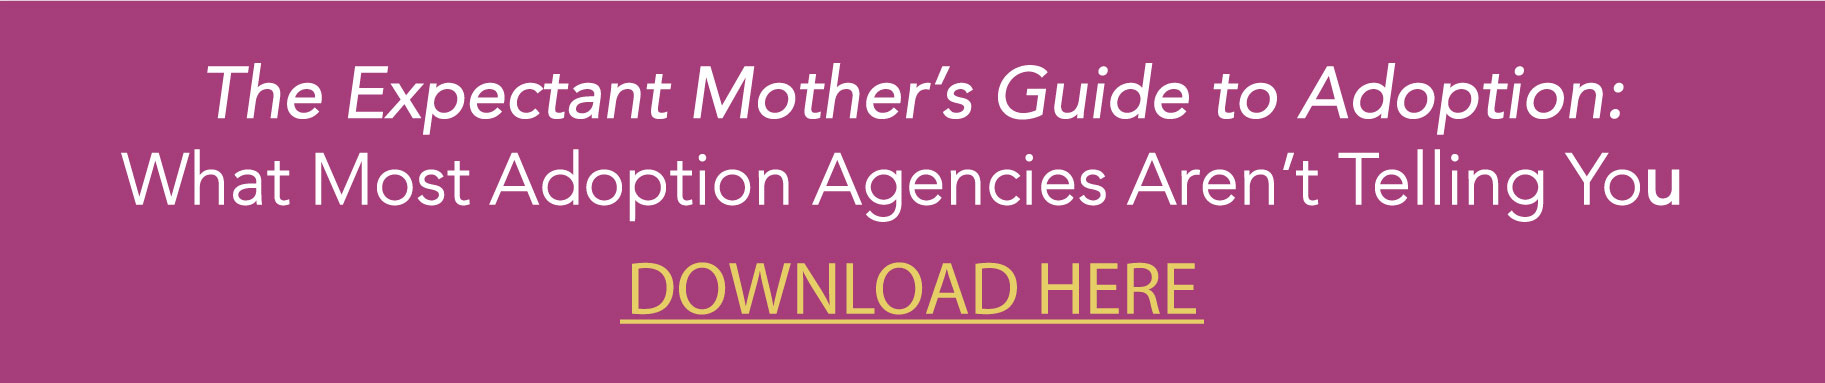 expectant-mothers-guide-to-adoption-attoption-attorney-support